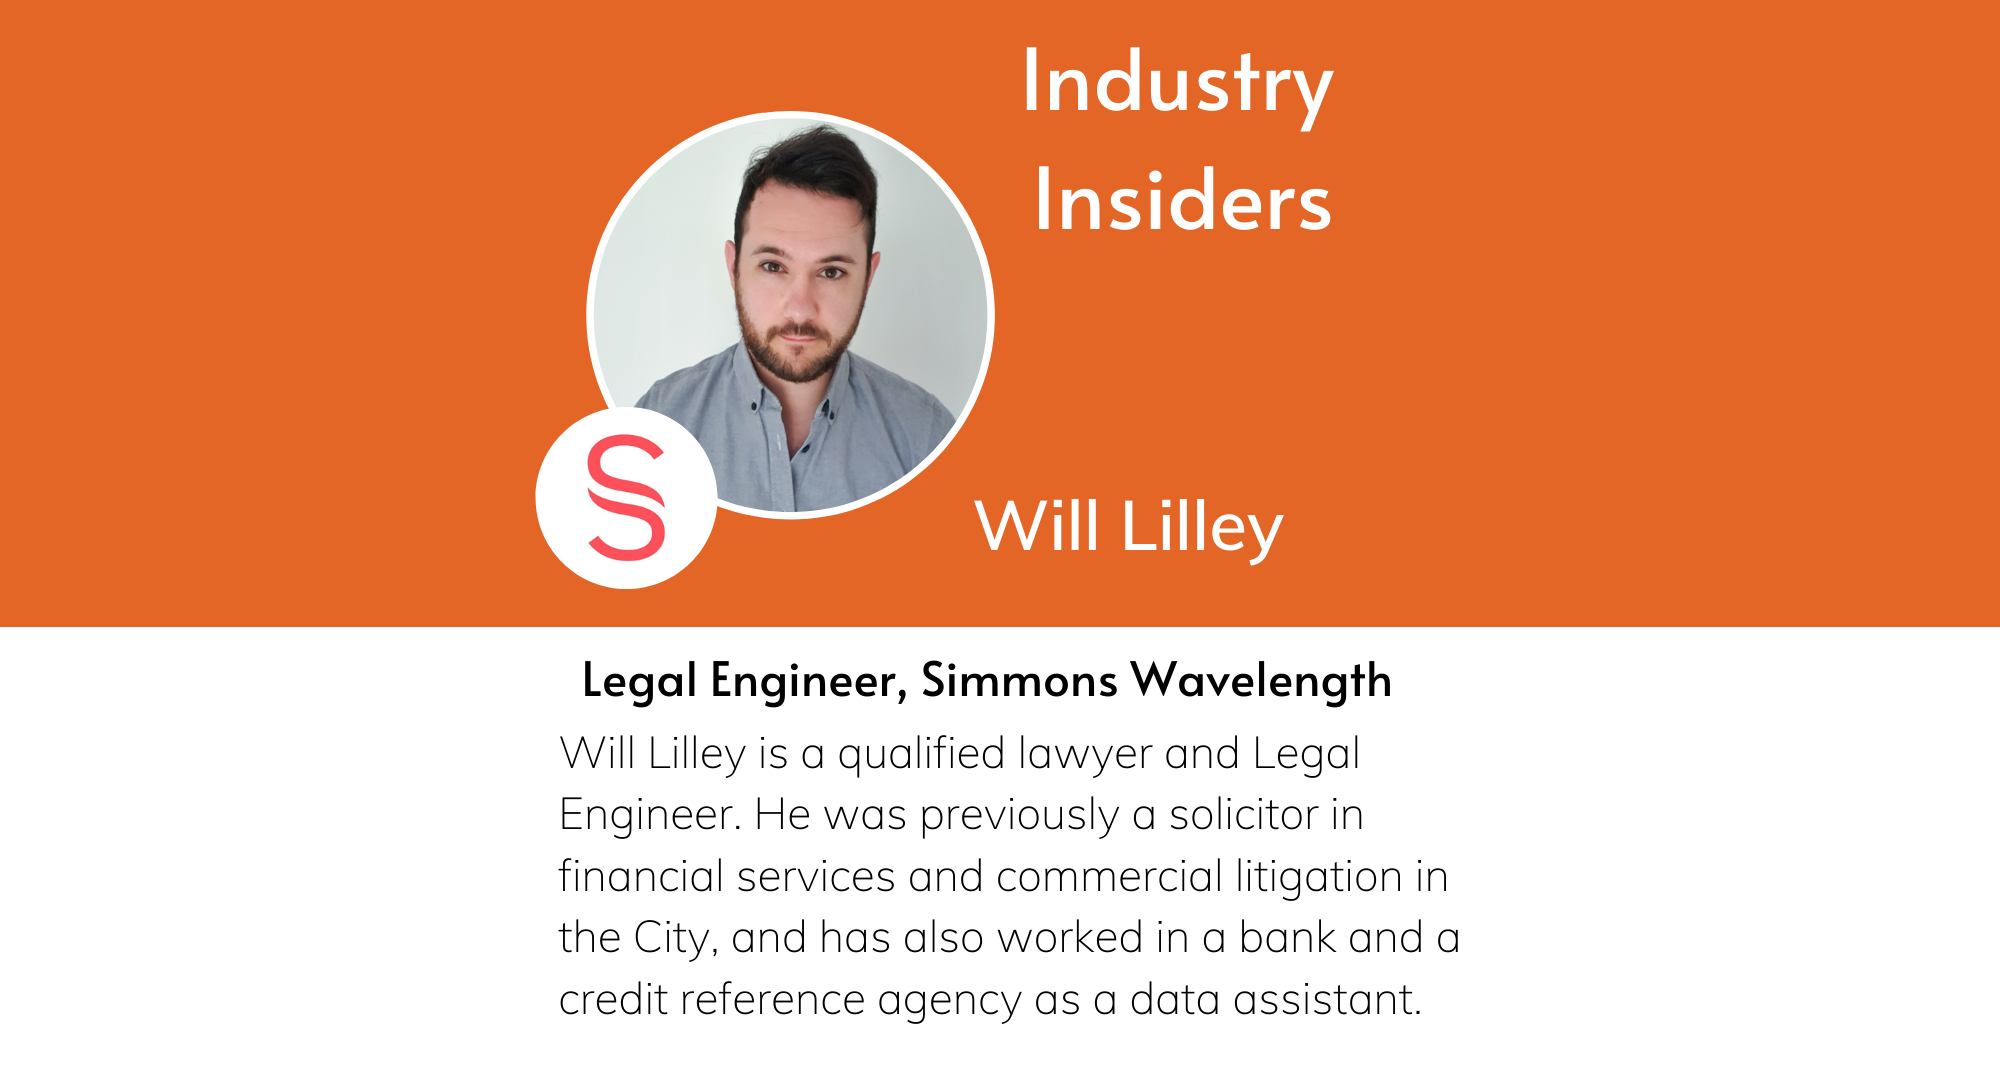 Industry Insiders - The Work of a Legal Engineer